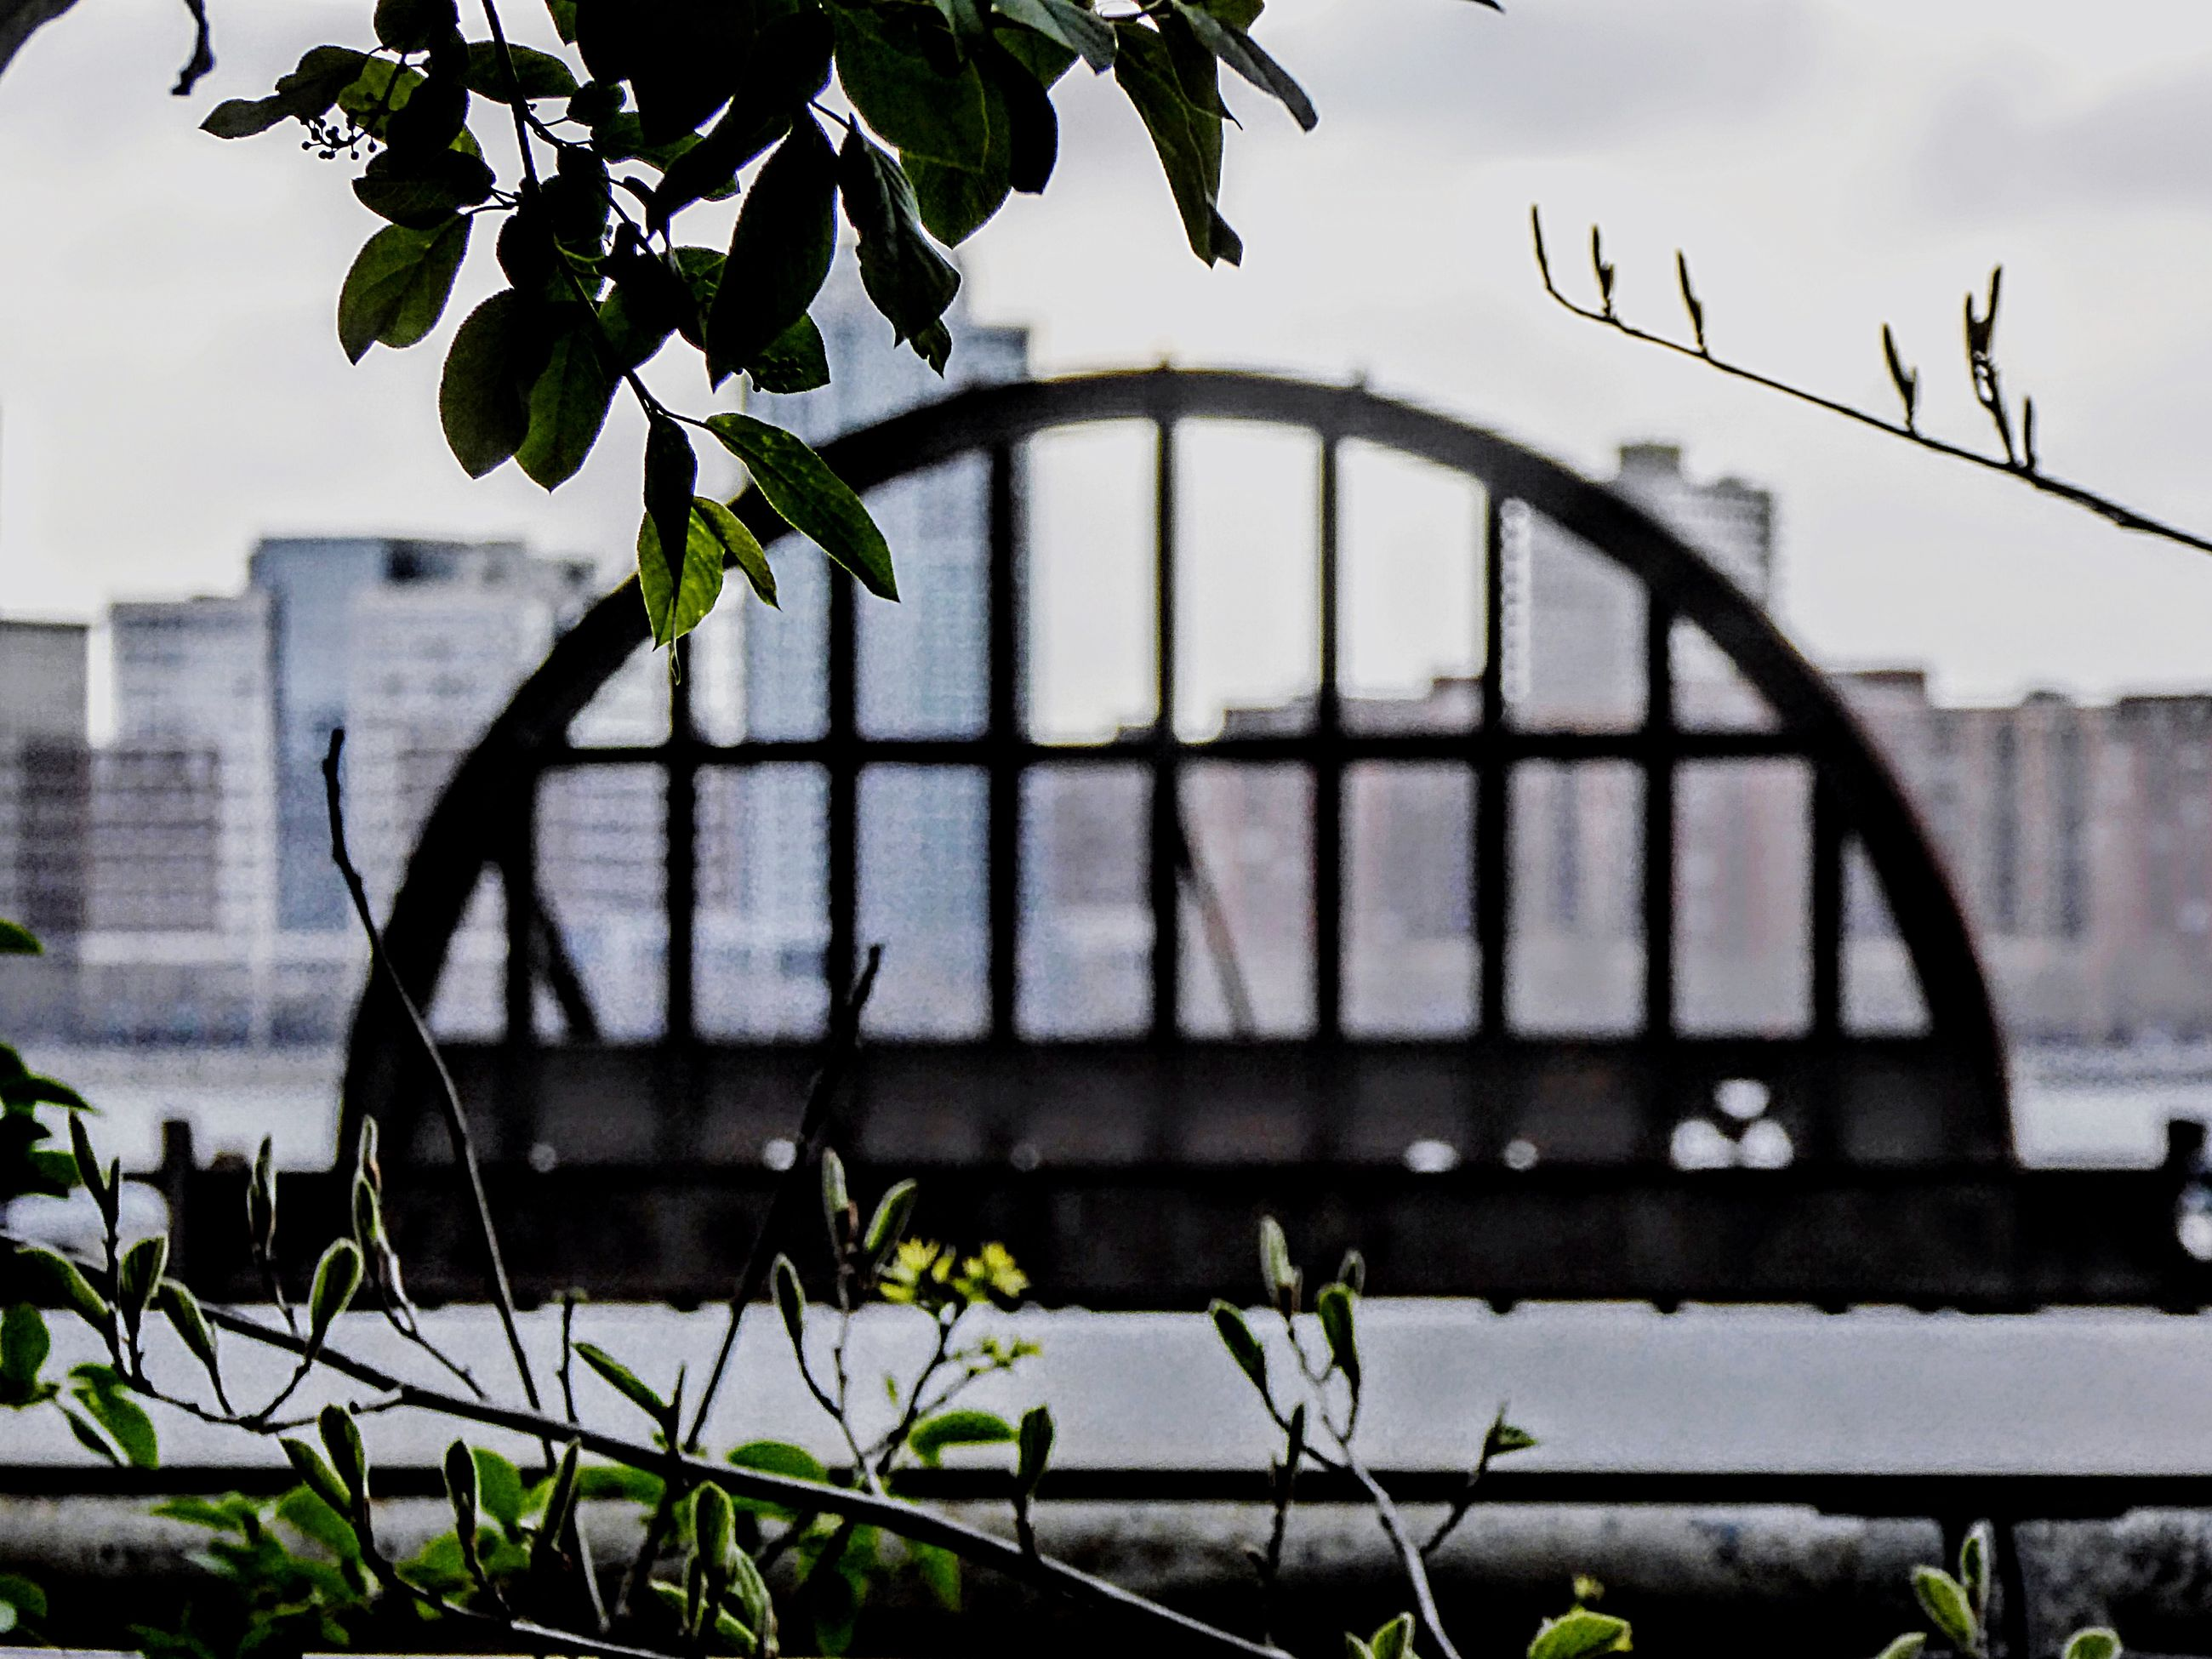 CLOSE-UP OF PLANT AGAINST RIVER AND BUILDINGS